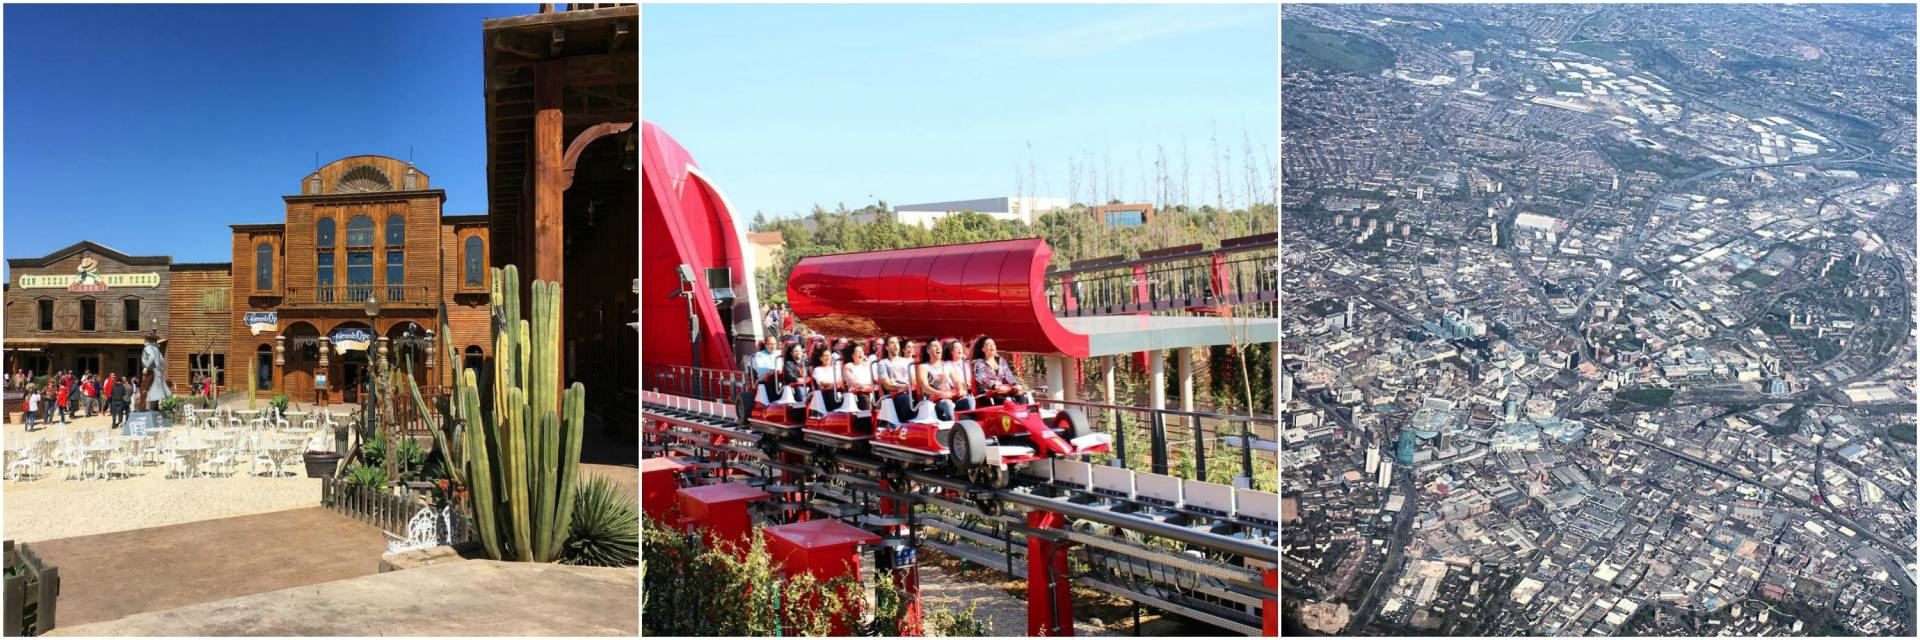 Favourite moments of 2017 - Portaventura World, Ferrari Land